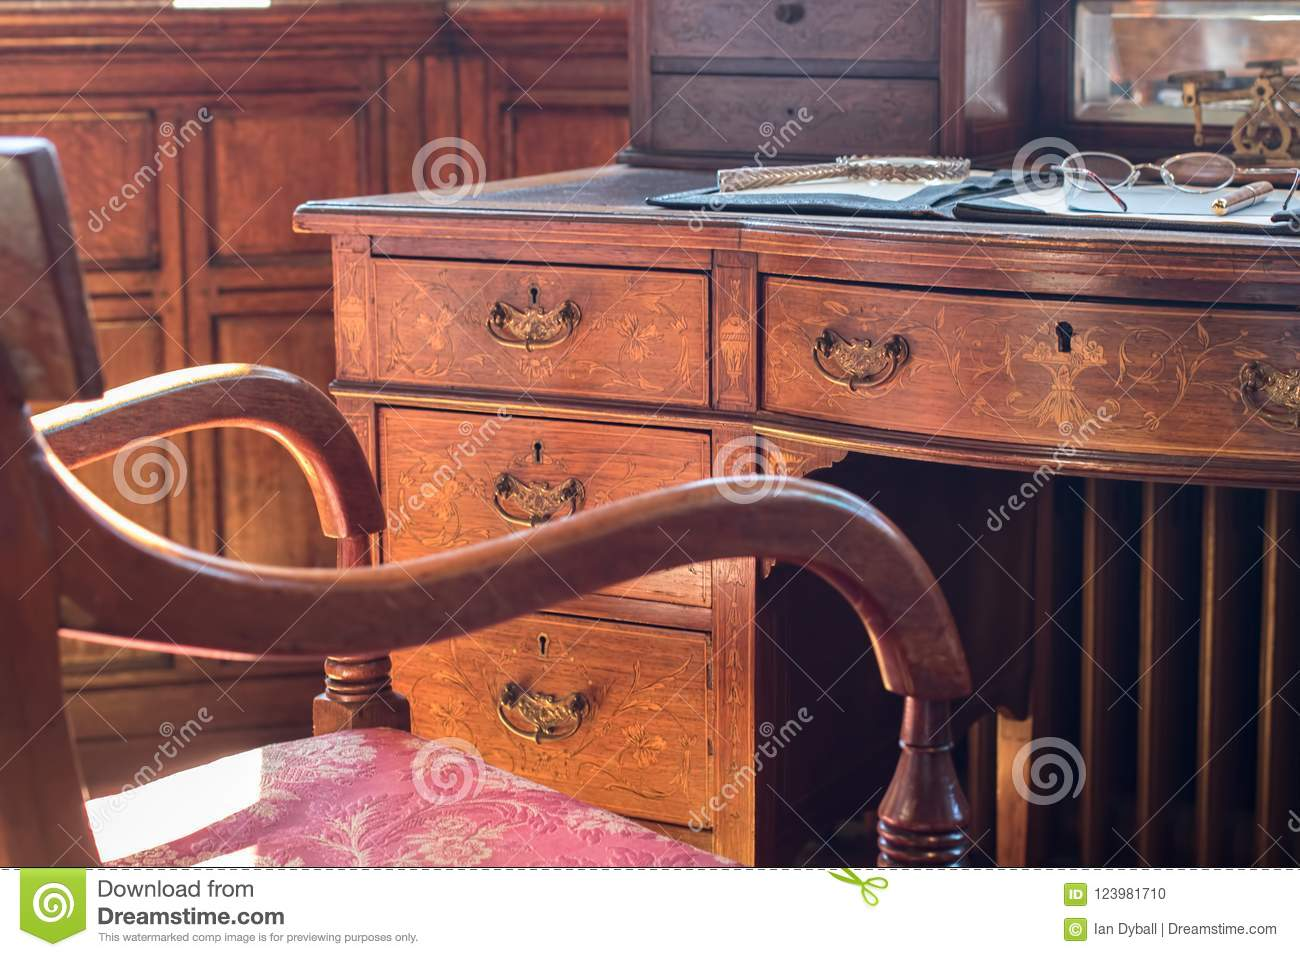 Download Fine Antique Pedestal Writing Desk. Studying History And Period  Stock Photo - Image of - Fine Antique Pedestal Writing Desk. Studying History And Period